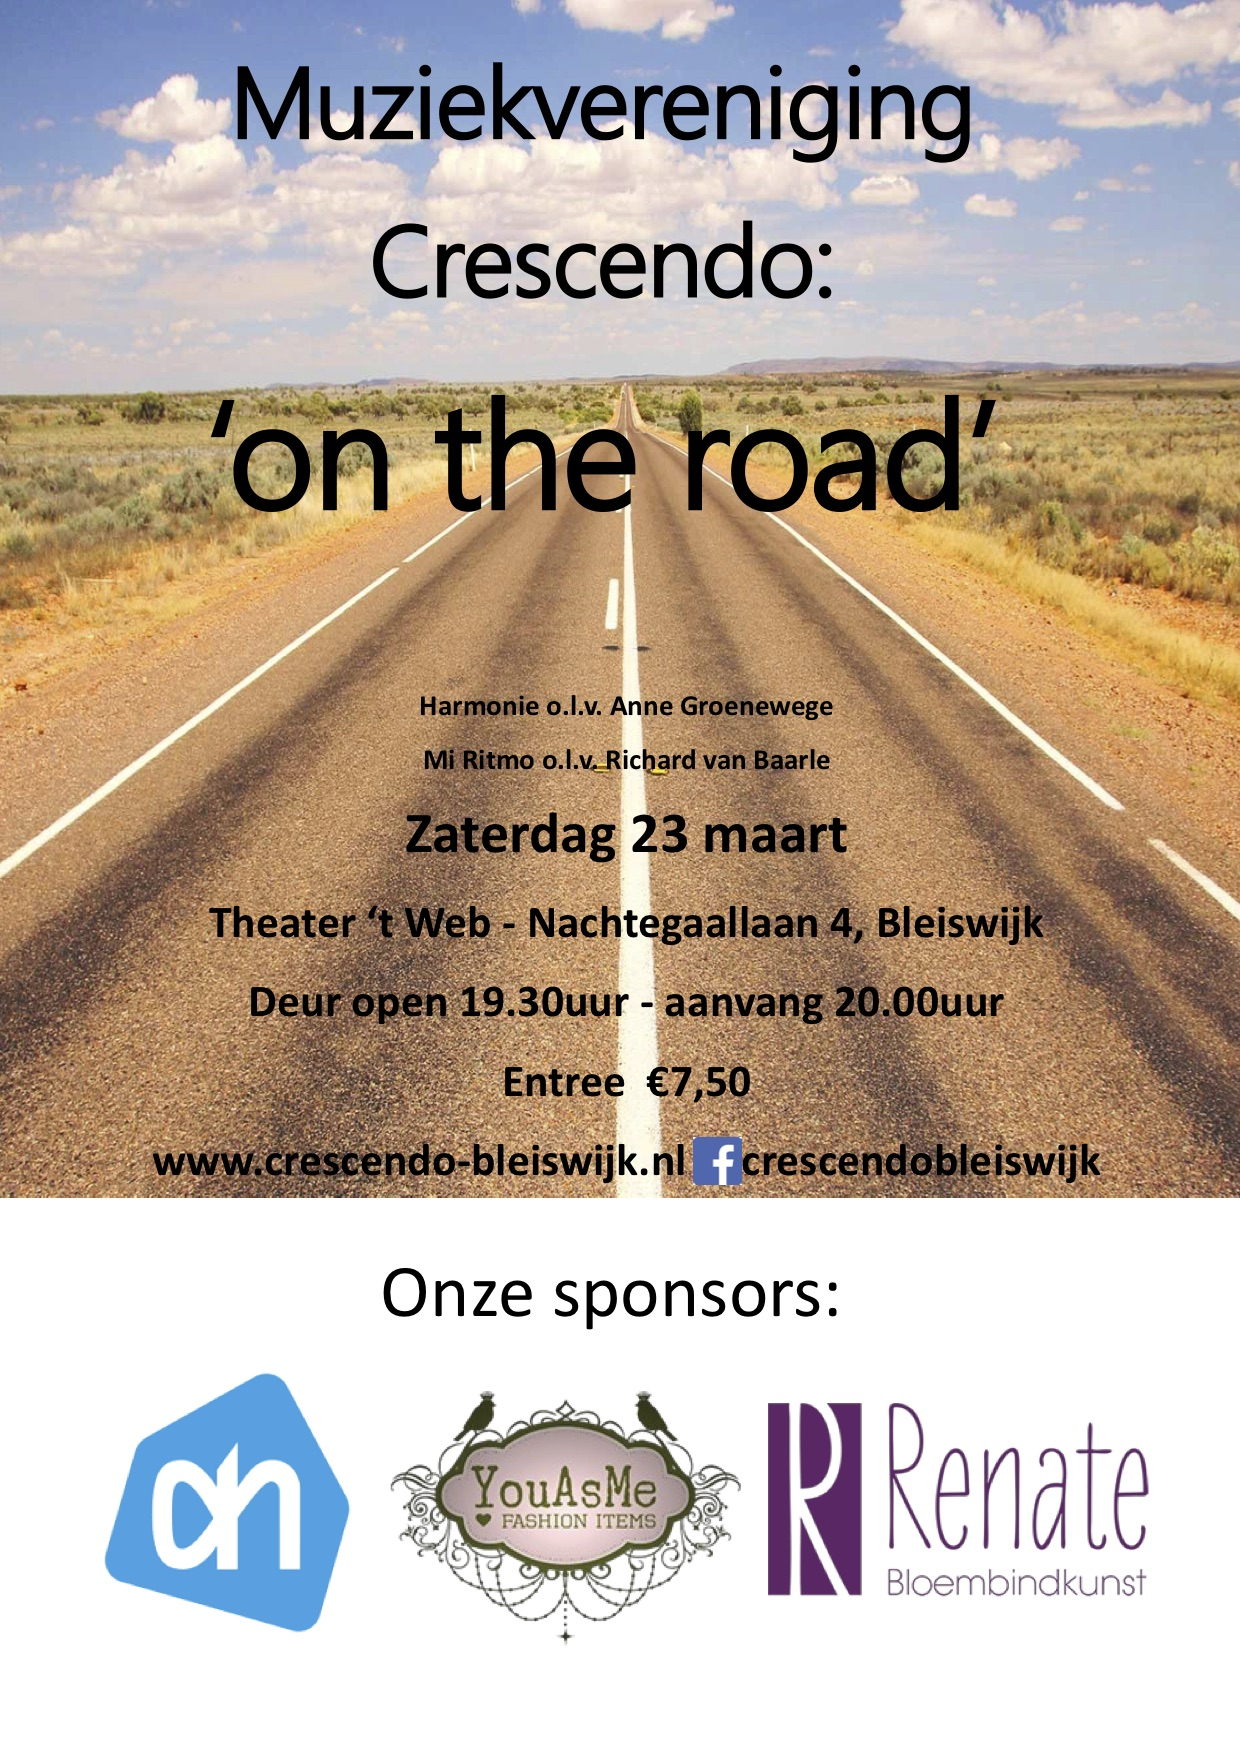 Voorjaarsconcert Crescendo: 'On the road'